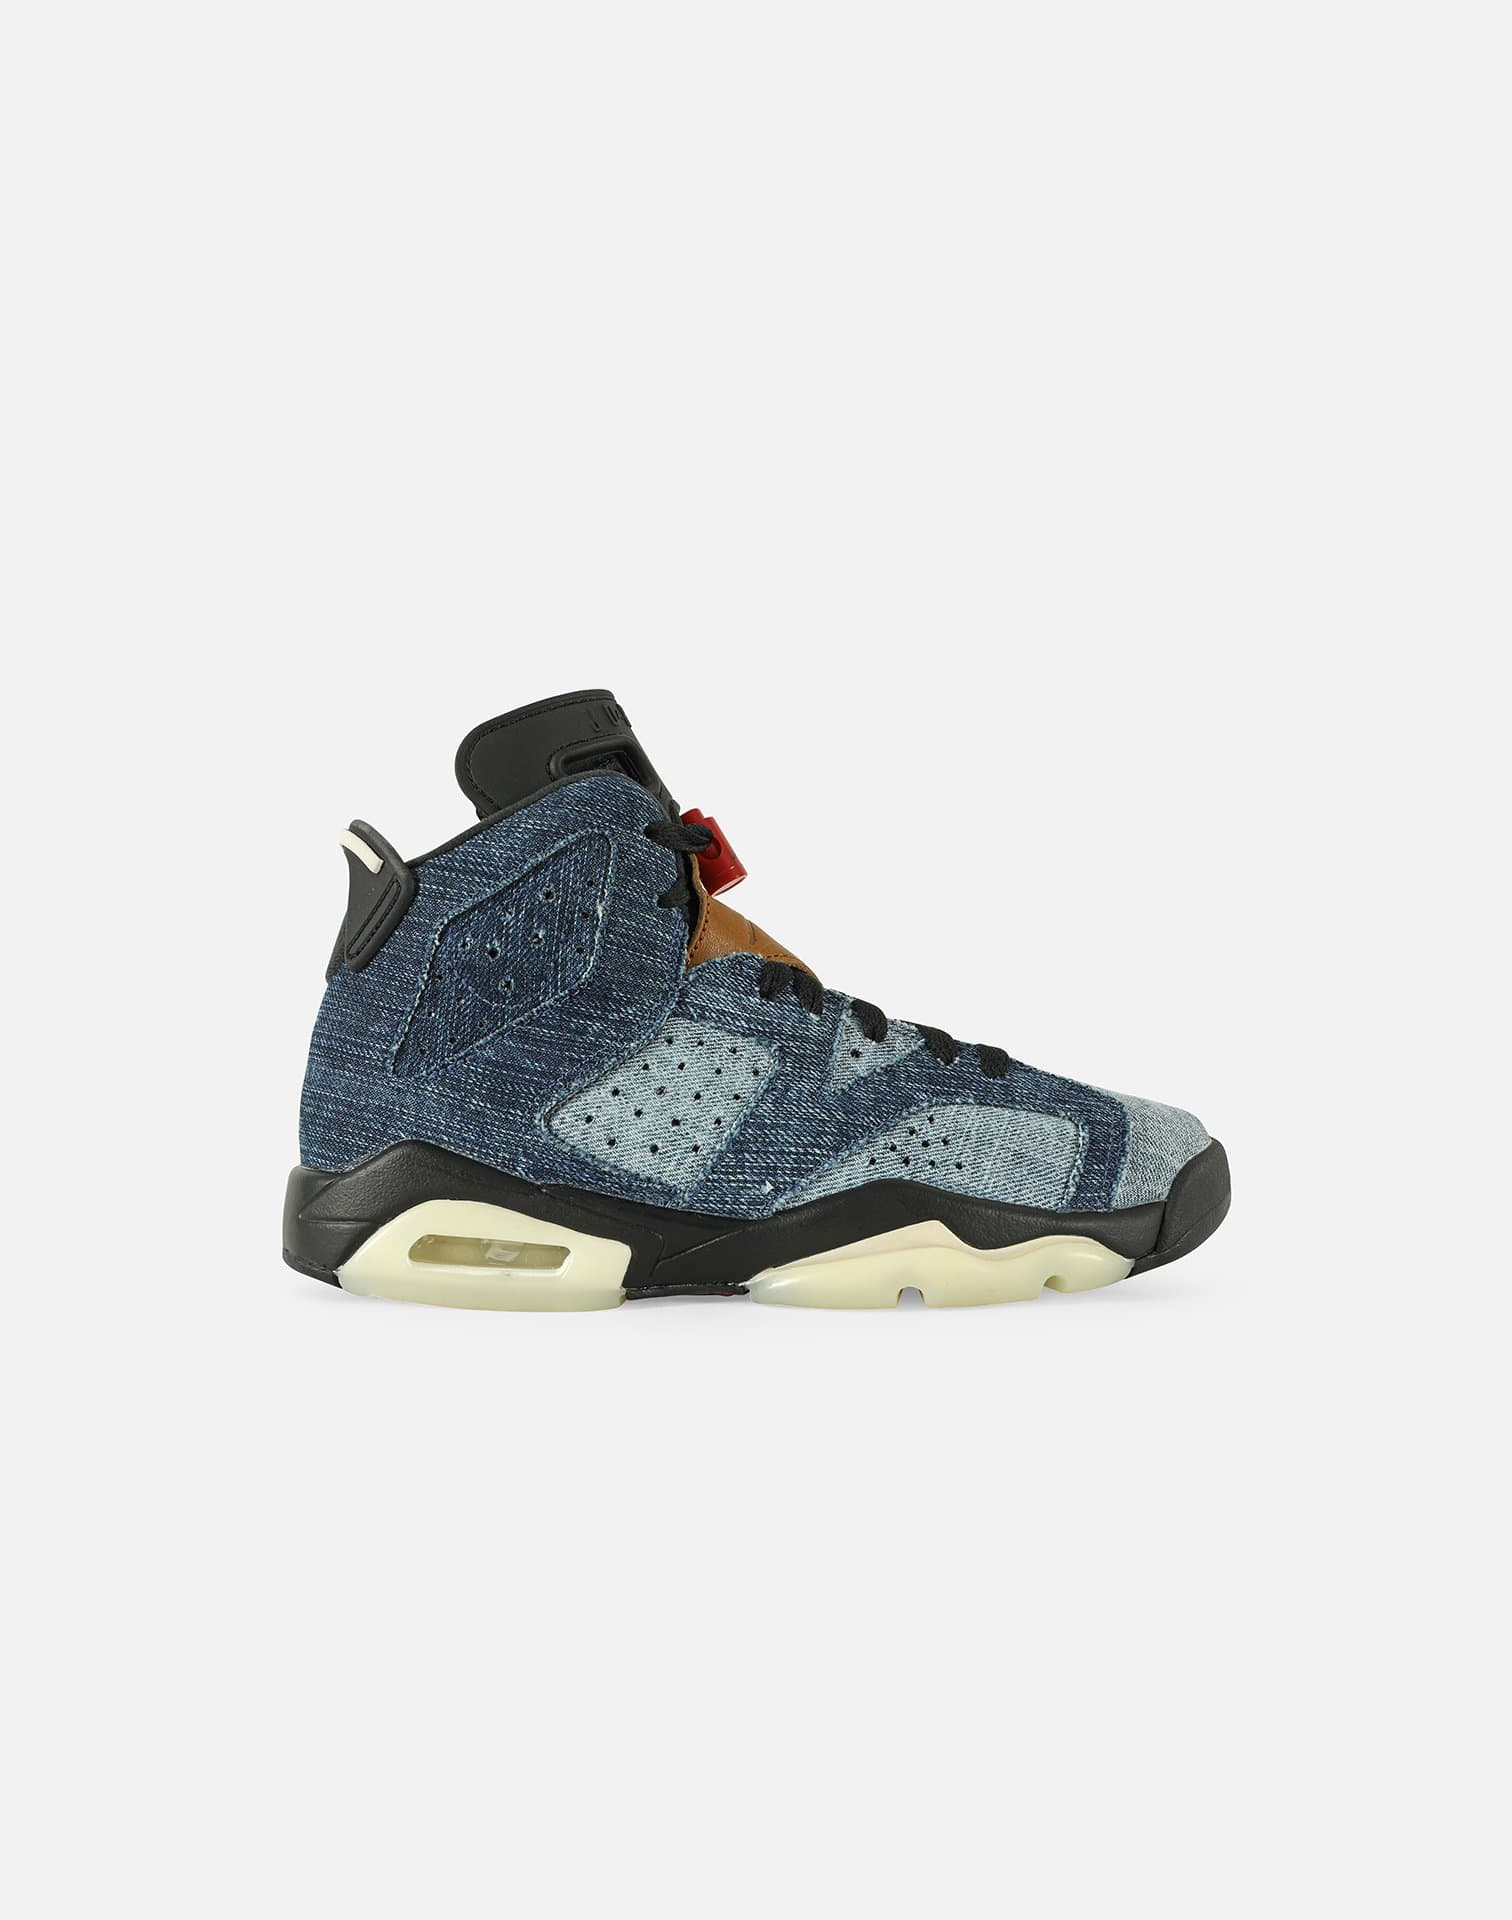 Jordan AIR JORDAN RETRO 6 'DENIM' GRADE-SCHOOL